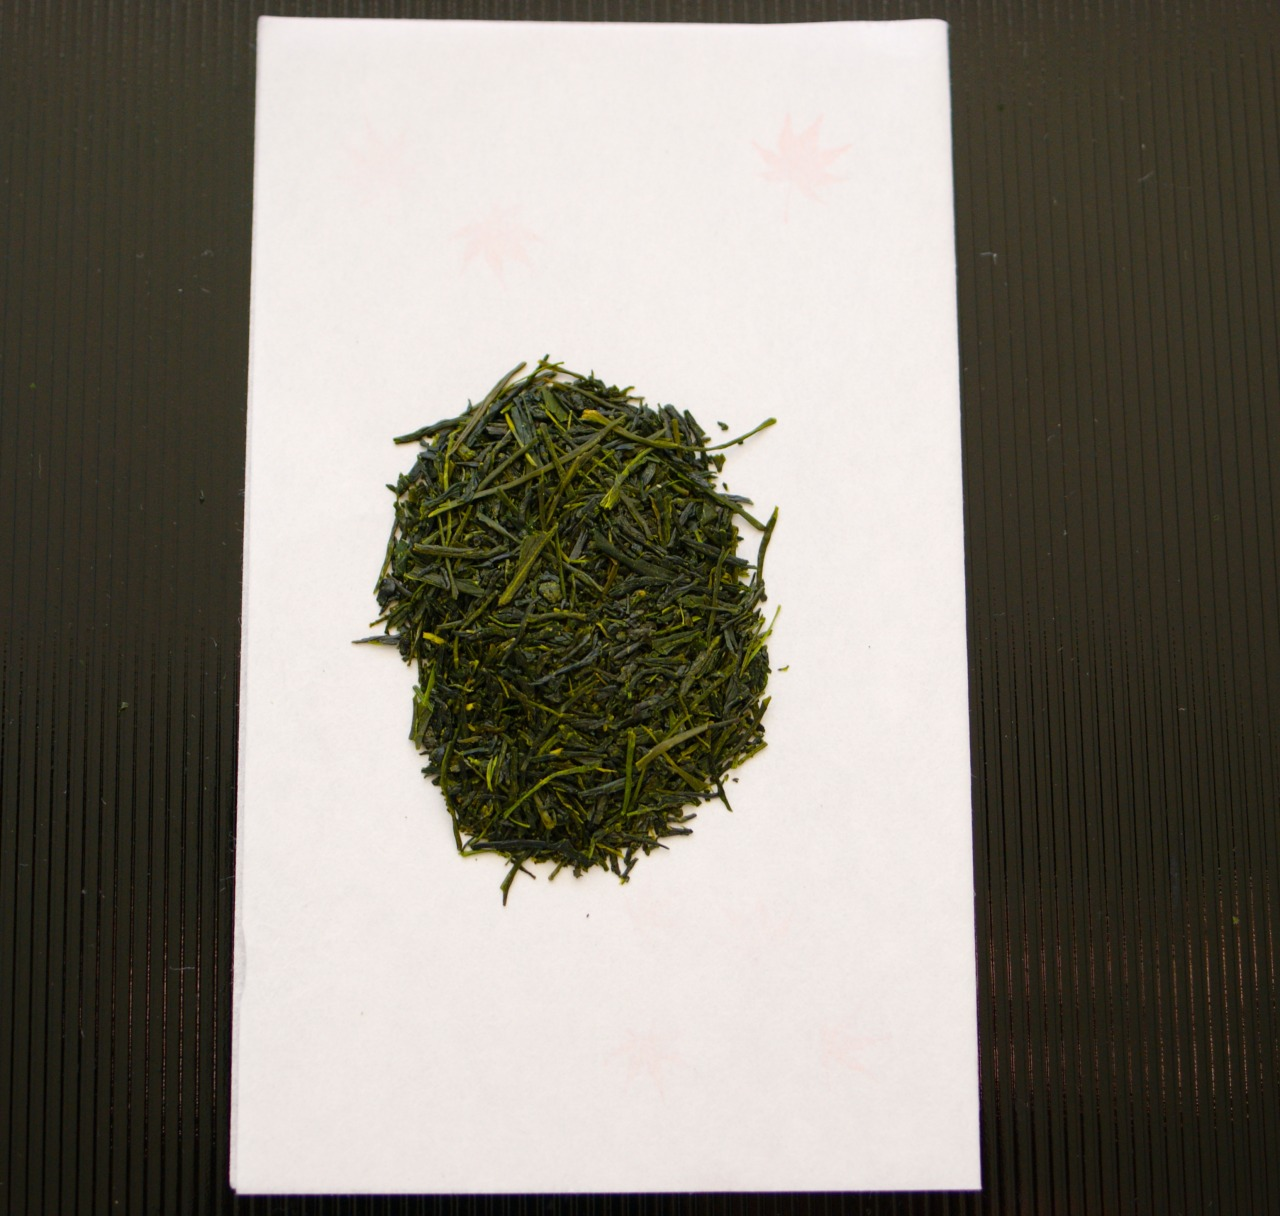 Yame No. 5.  A brand new addition to the Kettl line up: Yame No. 5 is a full bodied, medium-deep steamed sencha. A wonderfully aromatic tea, Yame No. 5 is fired slightly longer than other senchas giving it a deep, full bodied tang. A great value too! You can check it out  here